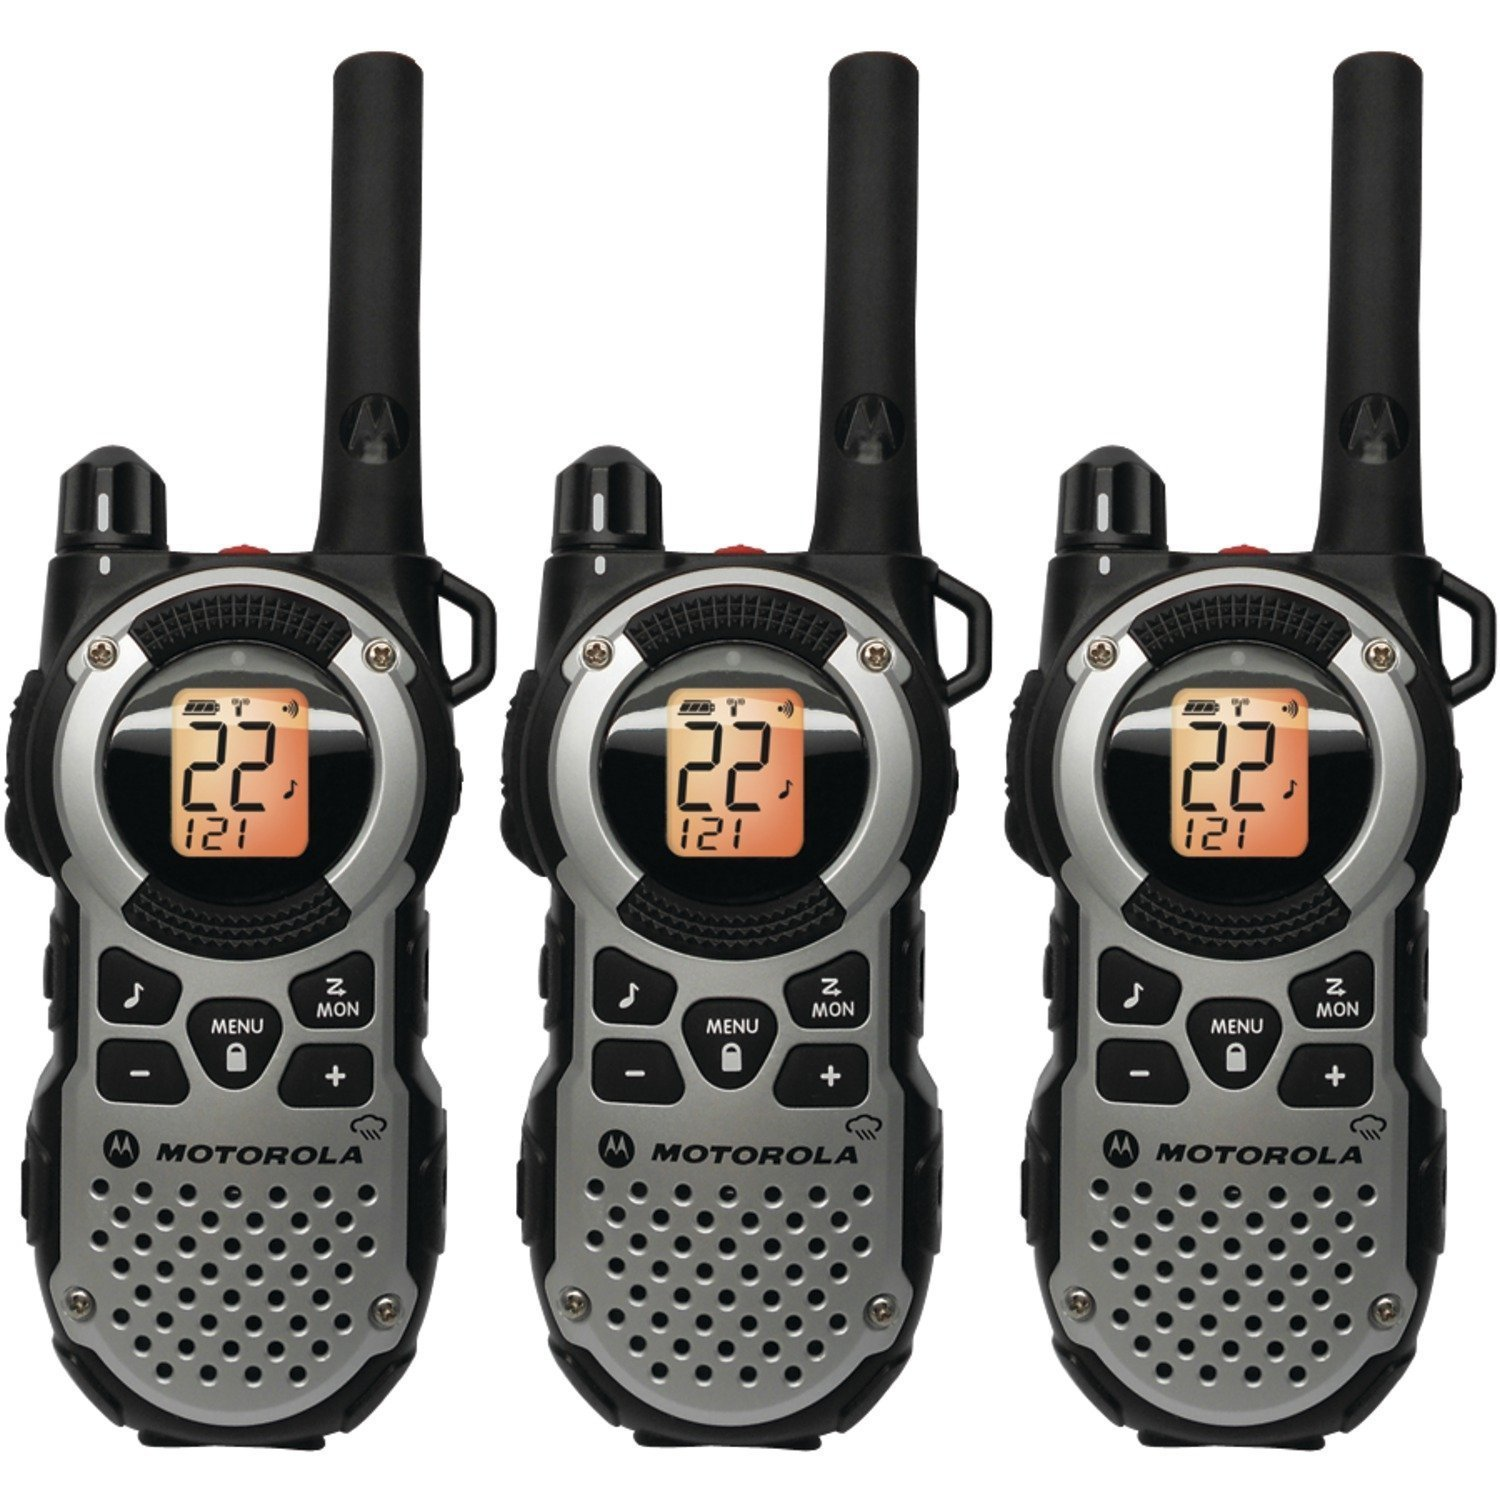 Motorola MT352TPR Two Way Radio